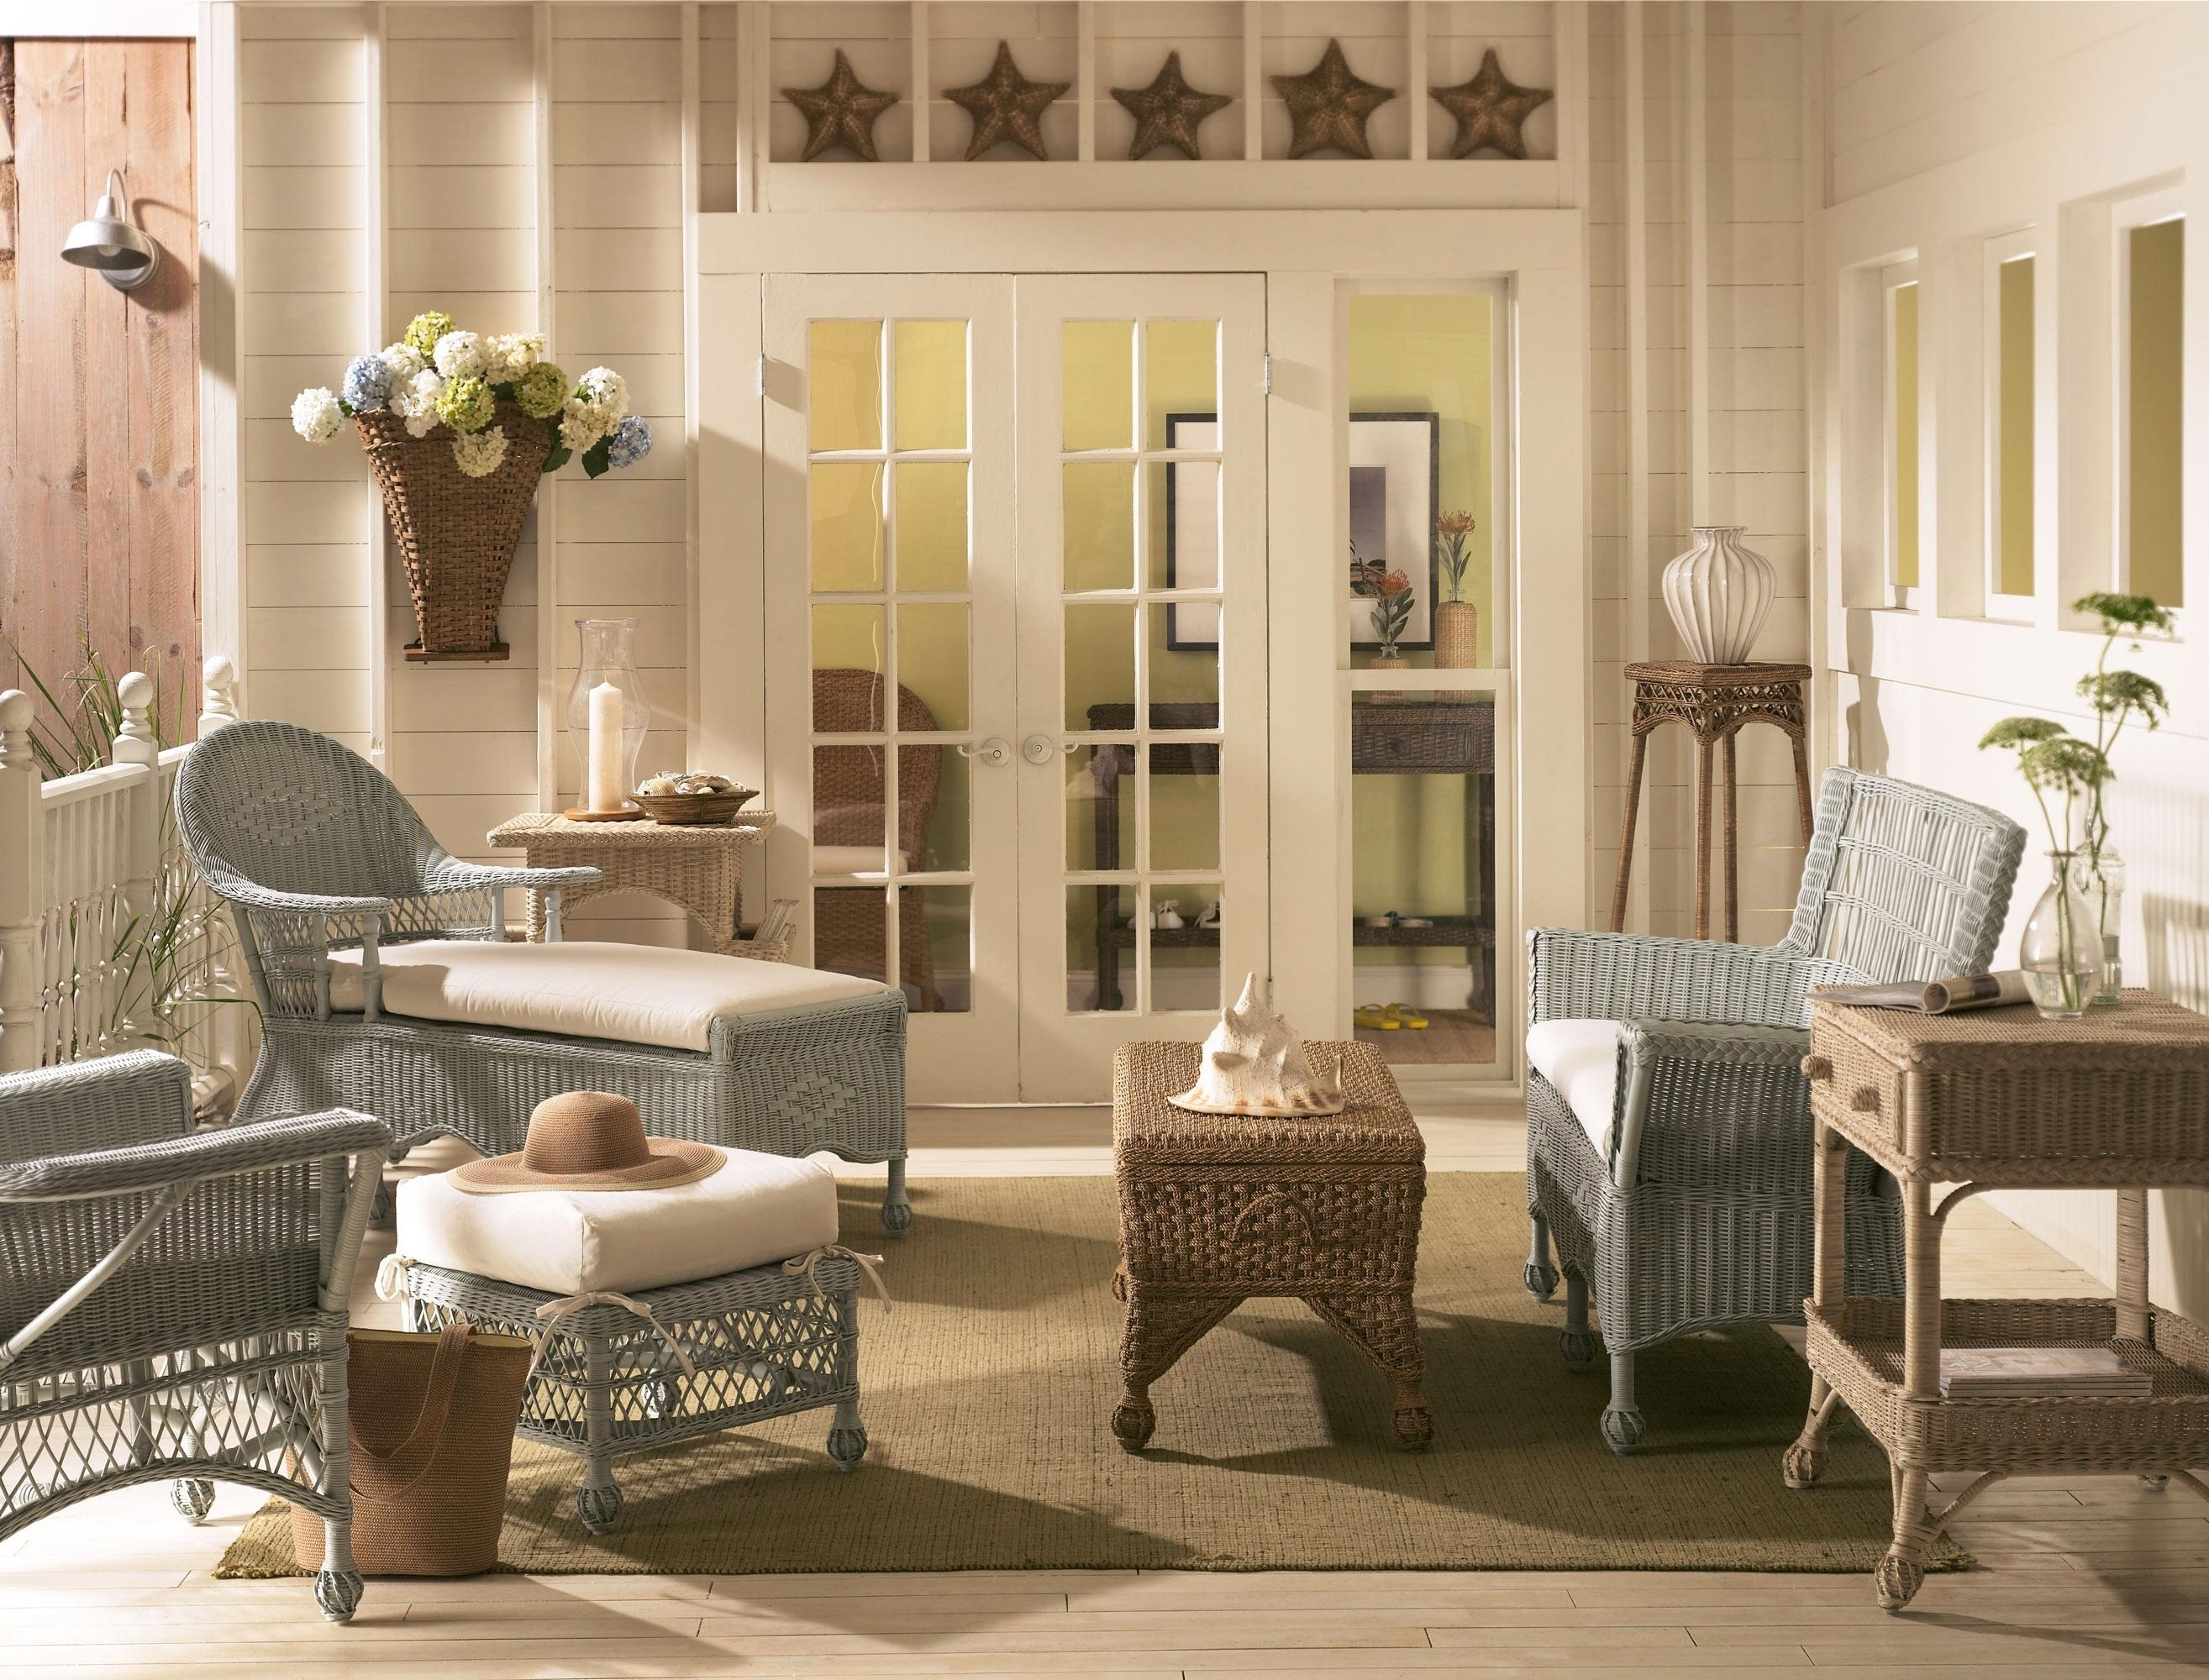 Cottage Style Sofas And Chairs | Tehranmix Decoration Throughout Inside Cottage Style Sofas And Chairs (Image 11 of 20)